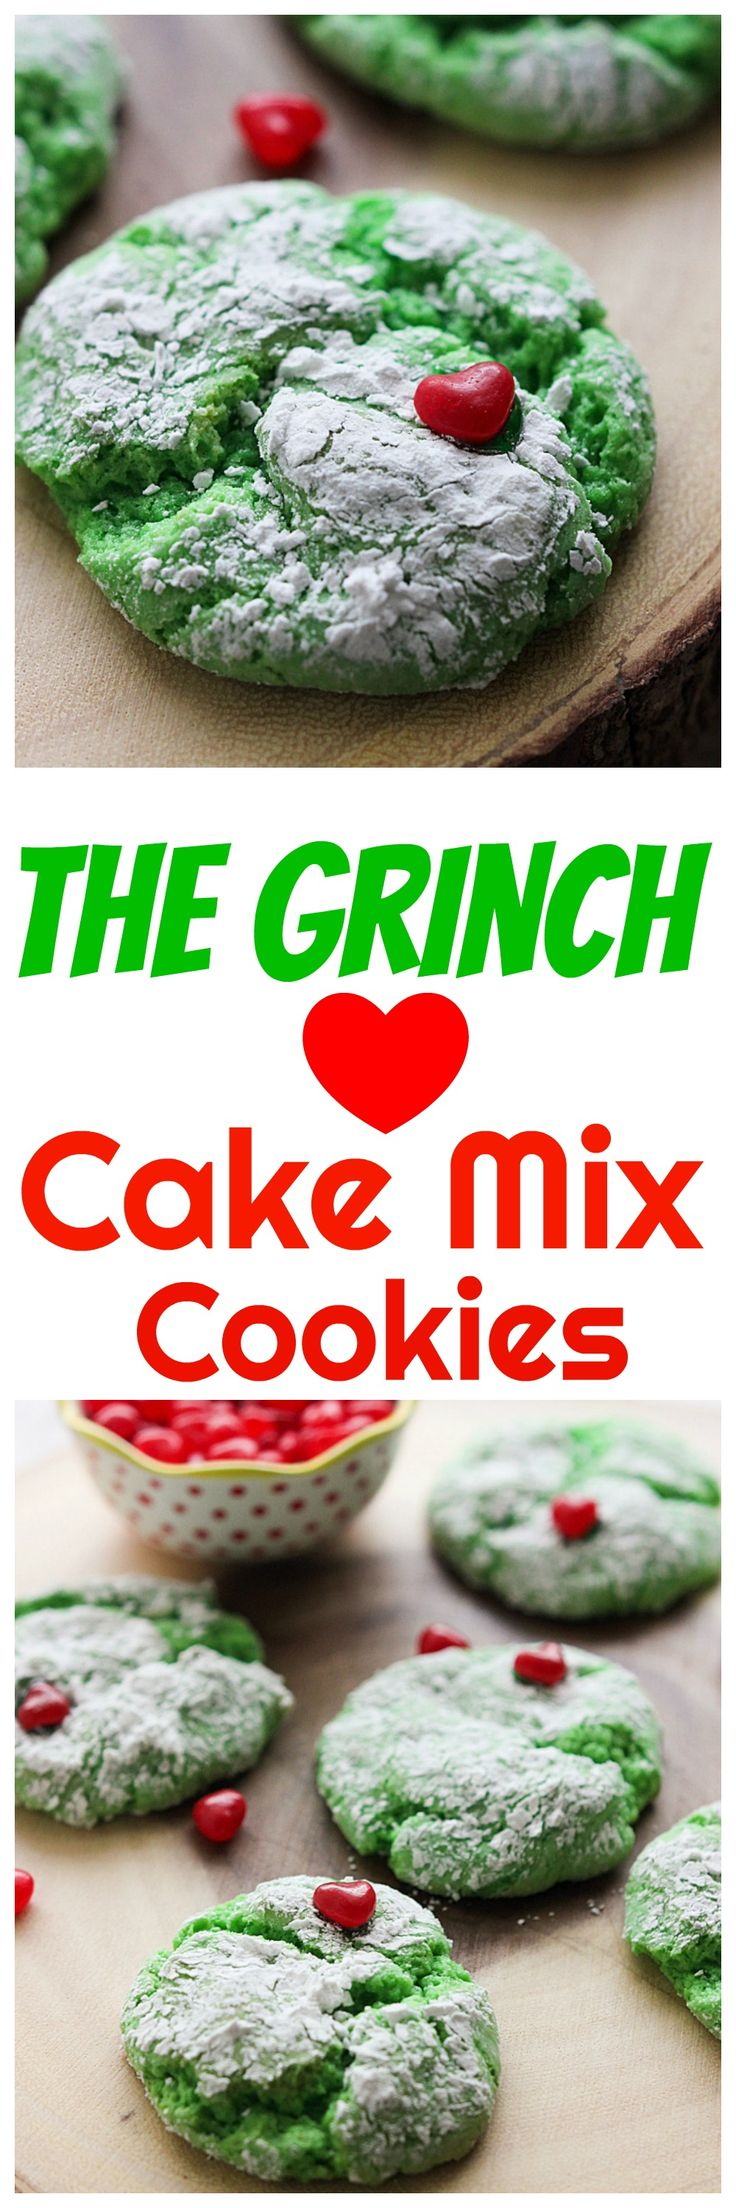 I made you guys The Grinch cake mix cookies! Cake mix cookies are a delicious treat but turn them green and add a heart for The Grinch and they're even better!